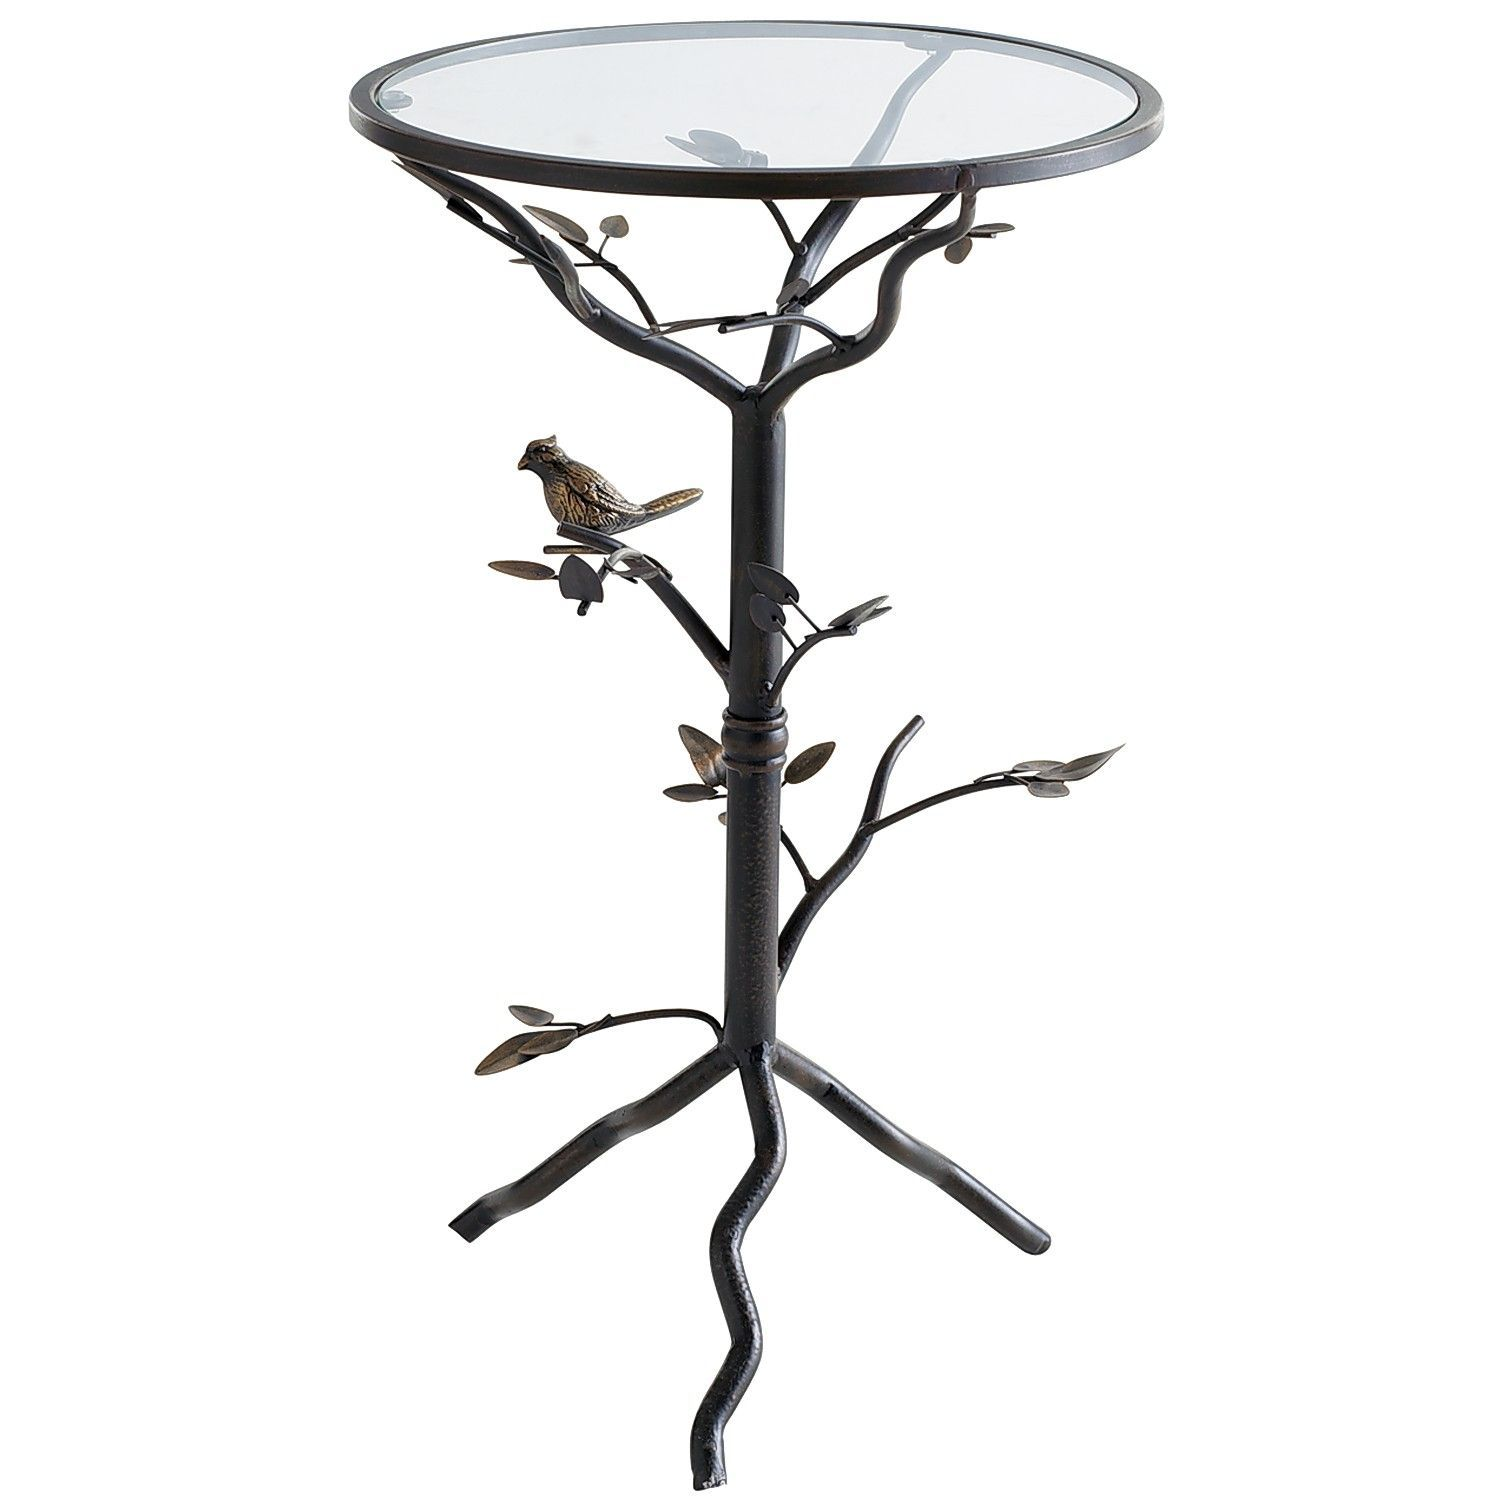 perched bird bronze accent table for the home living room pier one anywhere want except would need find place where wouldn risk poking out kid eye lol ikea tops pottery barn